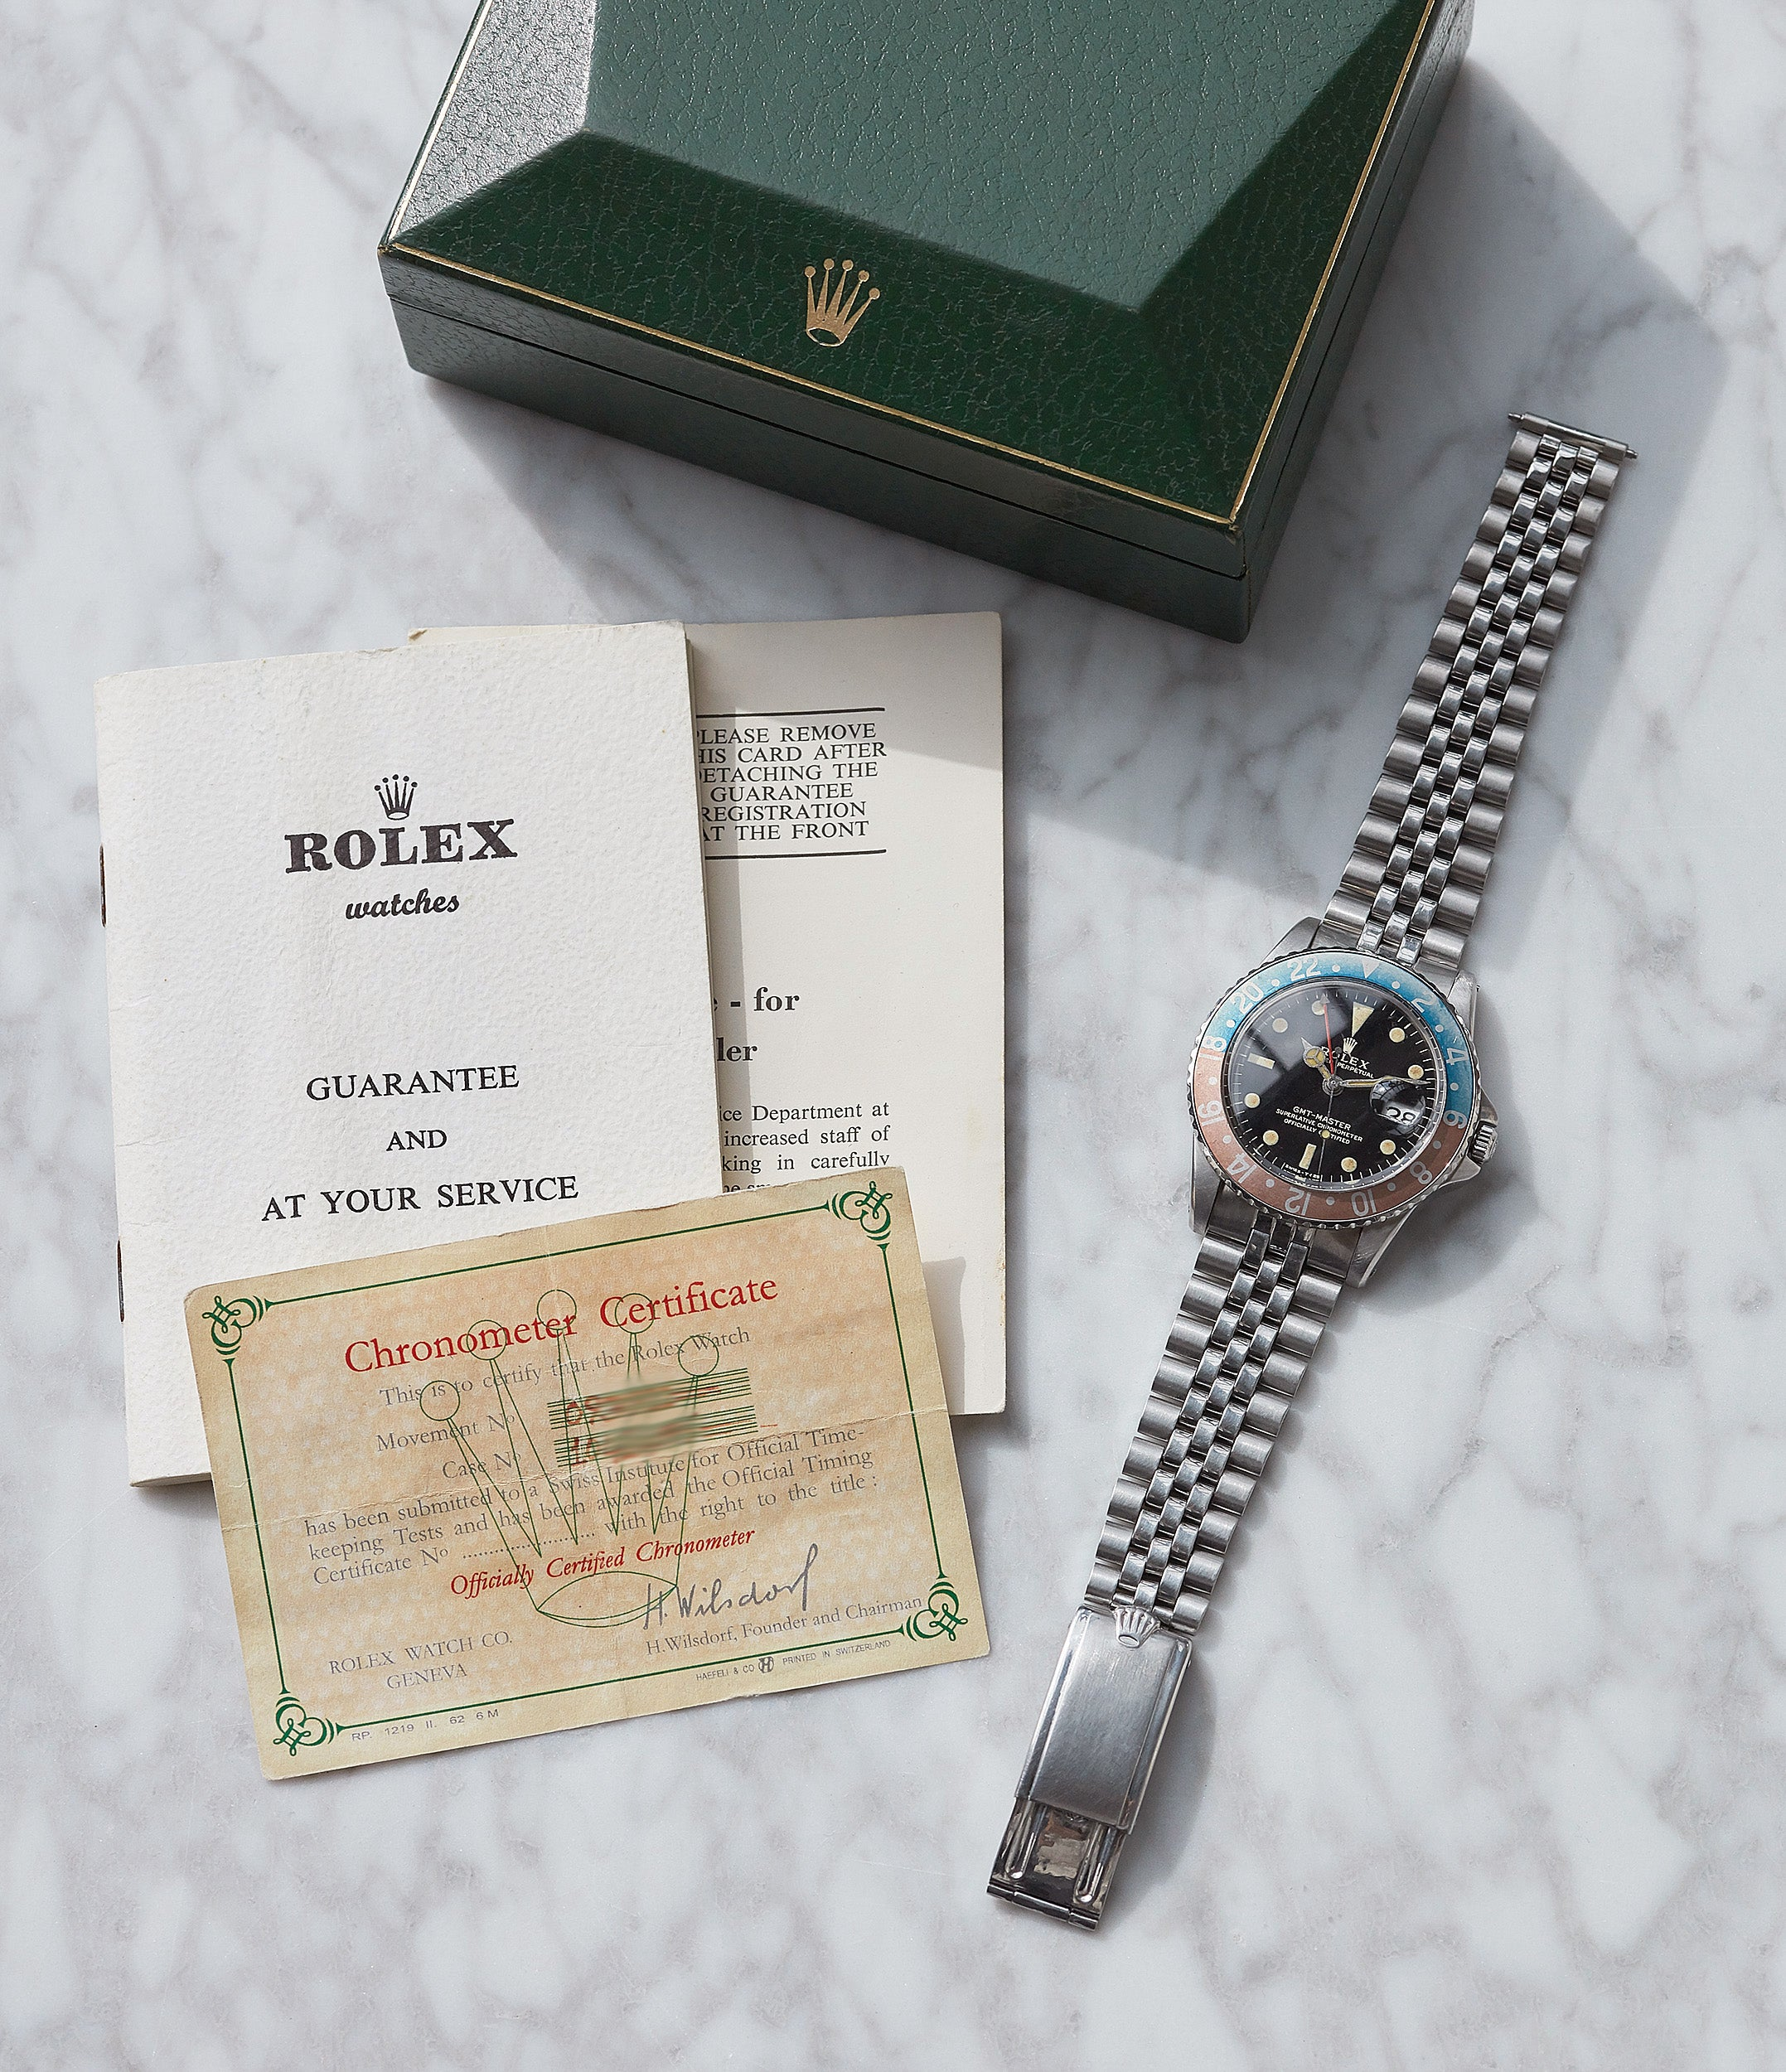 full set 1675 vintage Rolex GMT-Master Pepsi bezel gilt dial rare traveller sport watch for sale online at A Collected Man London UK specialist of vintage watches